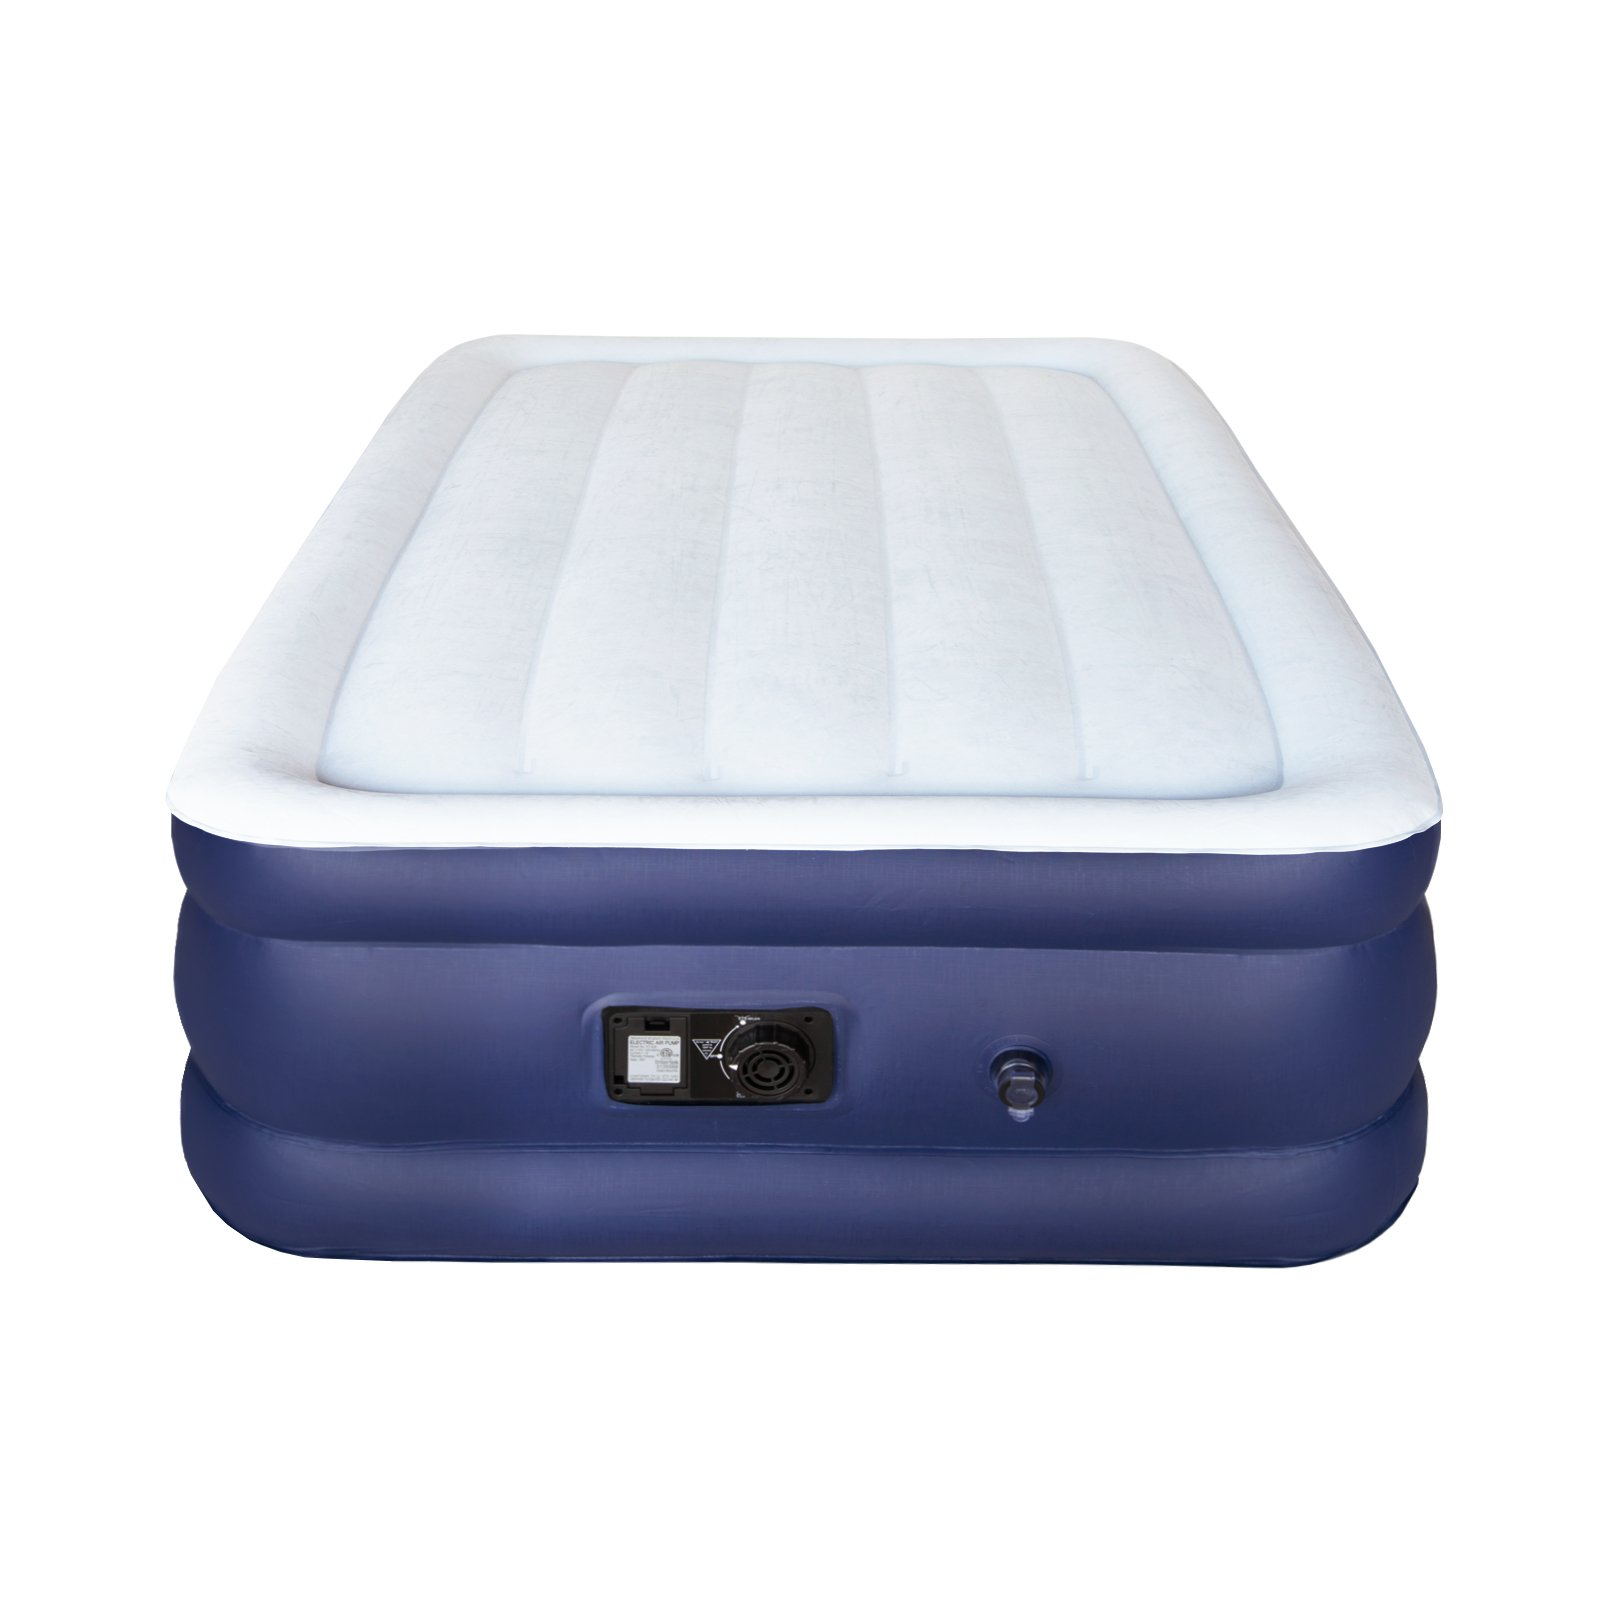 Inflatable Air Mattress with a Storage Bag , Sable Raised Blow up Airbed, Height 18 inches, Full Size